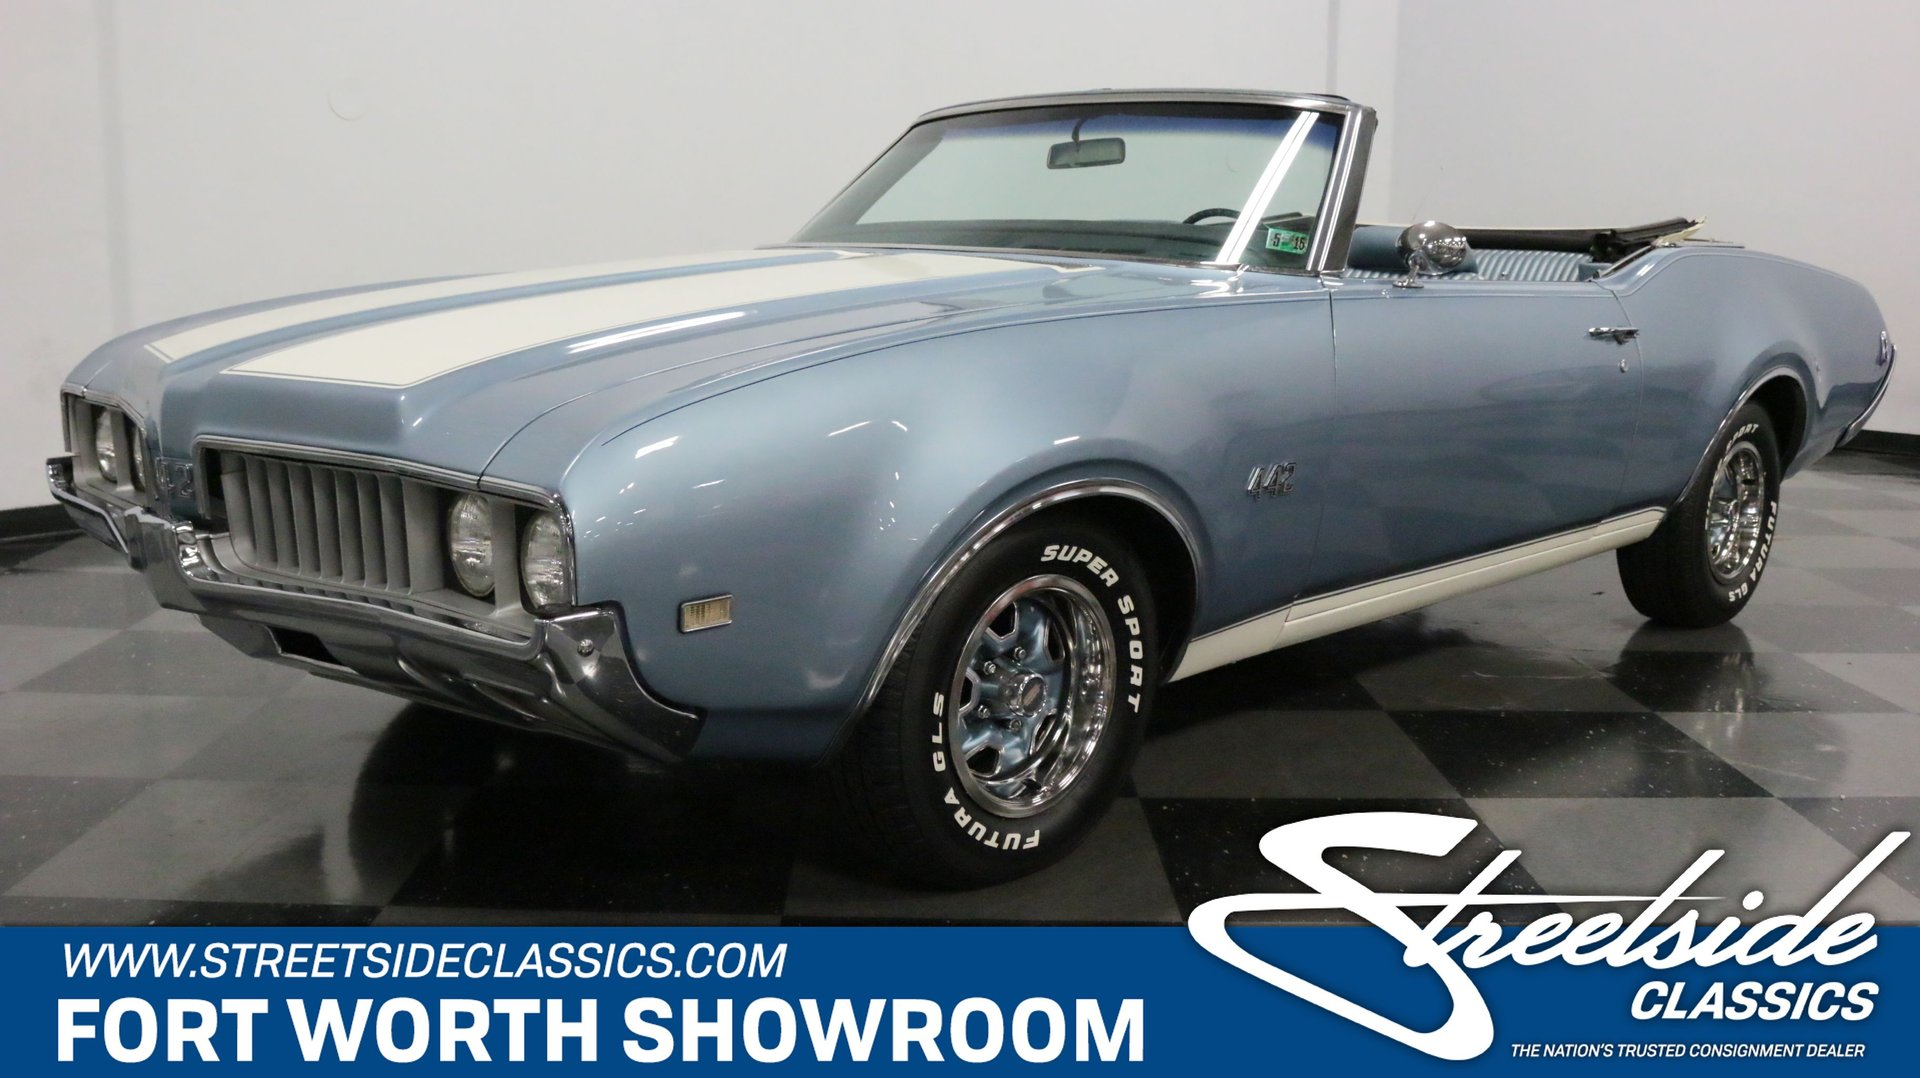 1969 Oldsmobile Cutlass 442 Tribute Convertible for sale